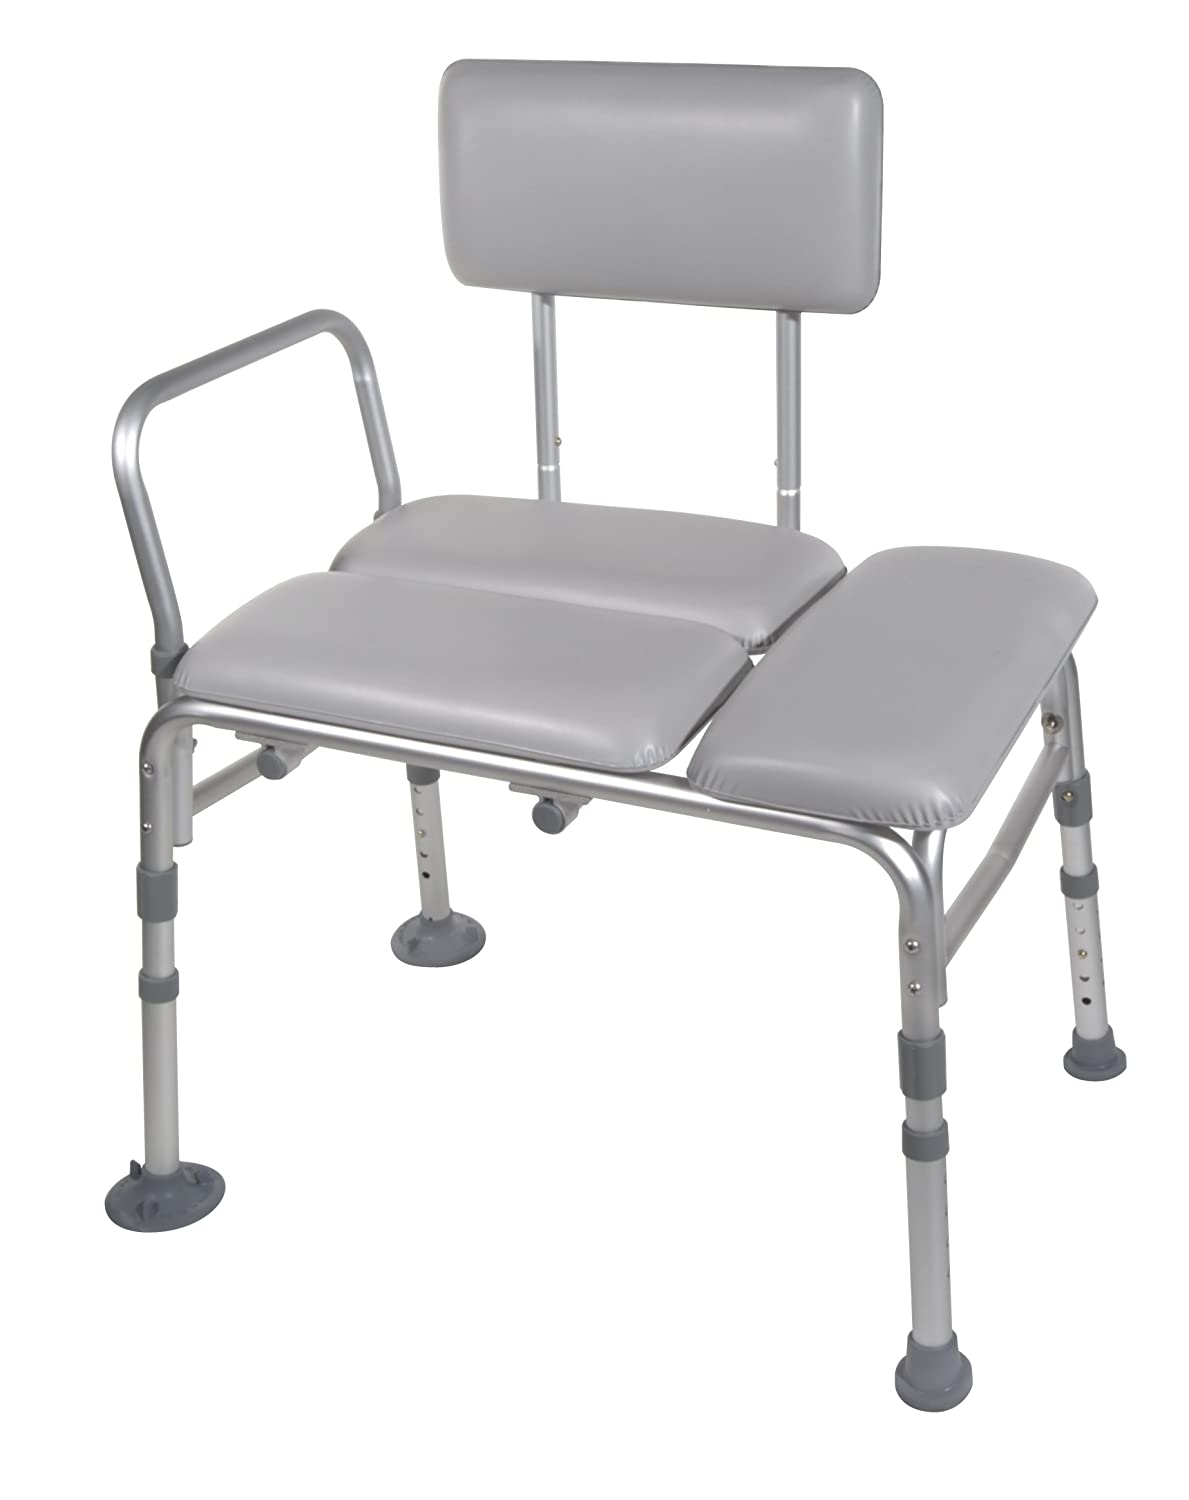 Amazon.com: Drive Medical Padded Seat Transfer Bench, Gray: Health ...